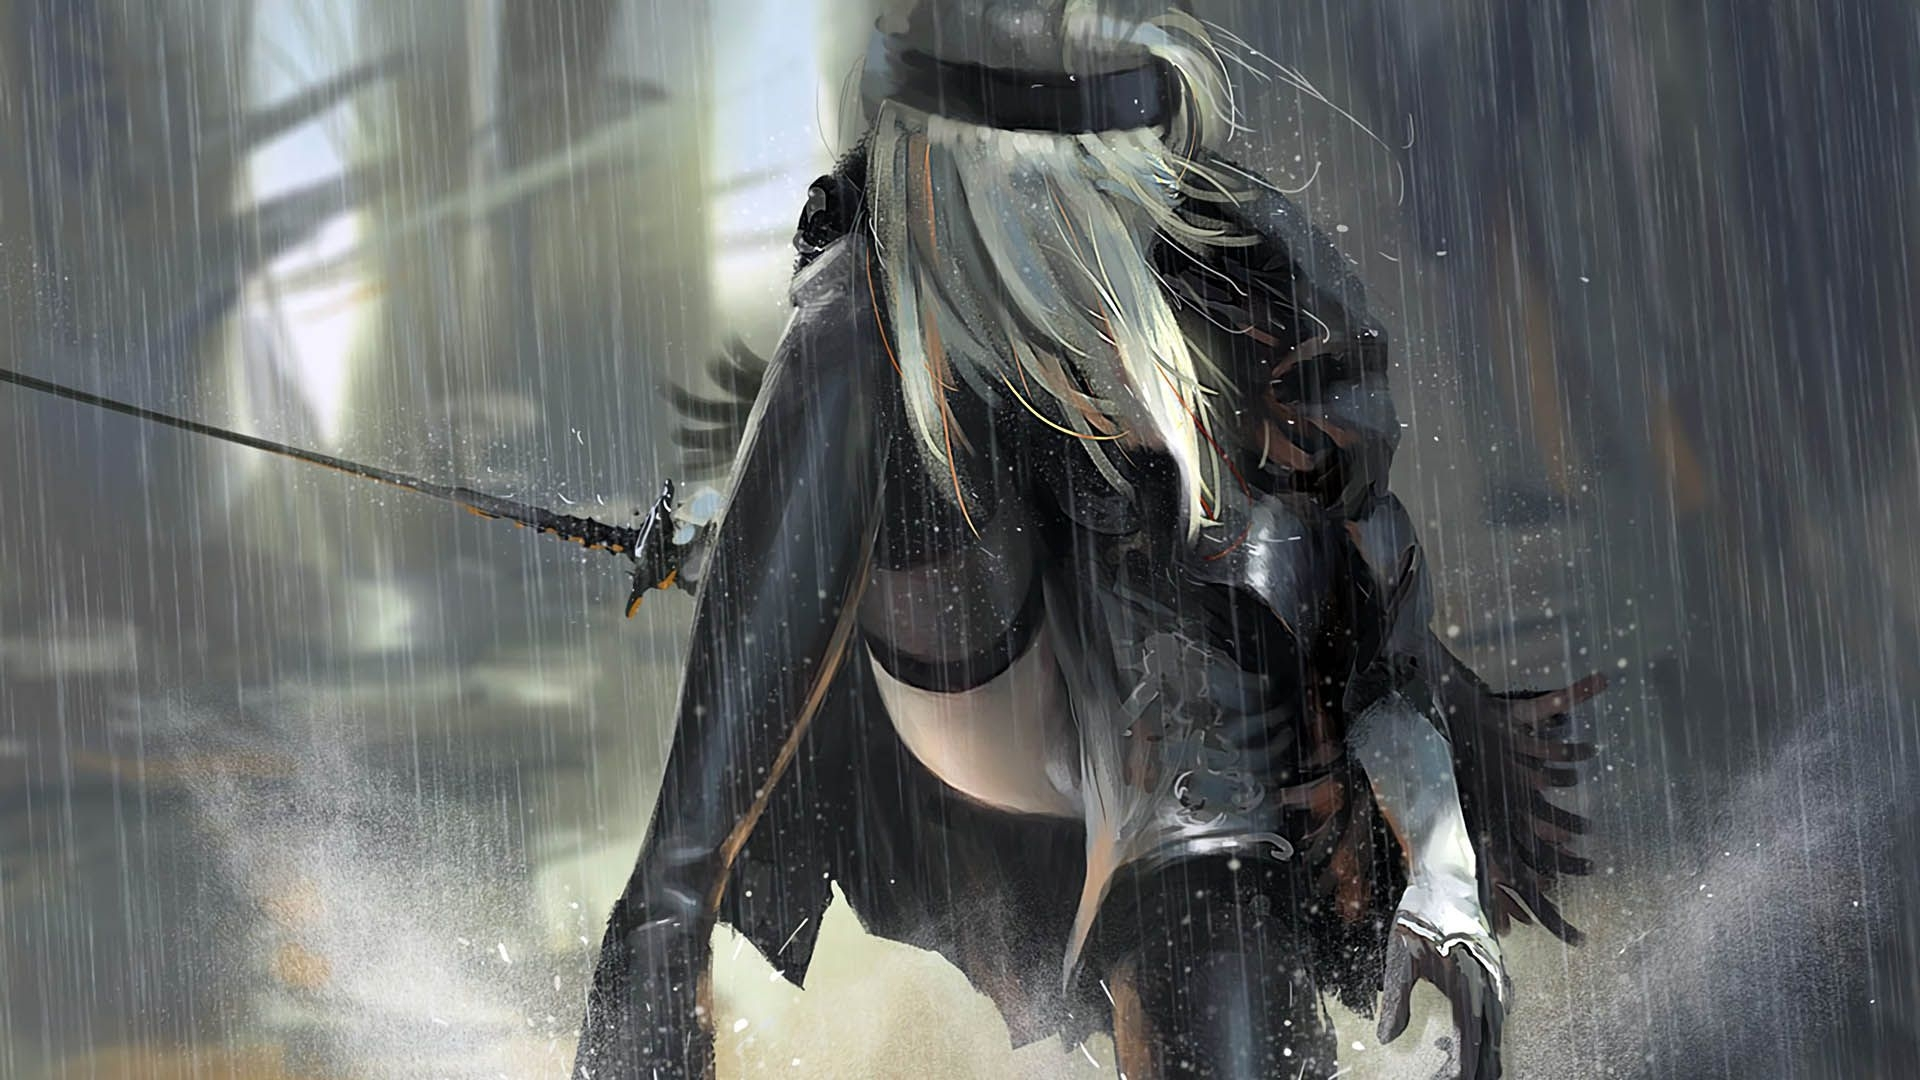 2b nier automata 1920x1080 wallpaper | favorite games | pinterest